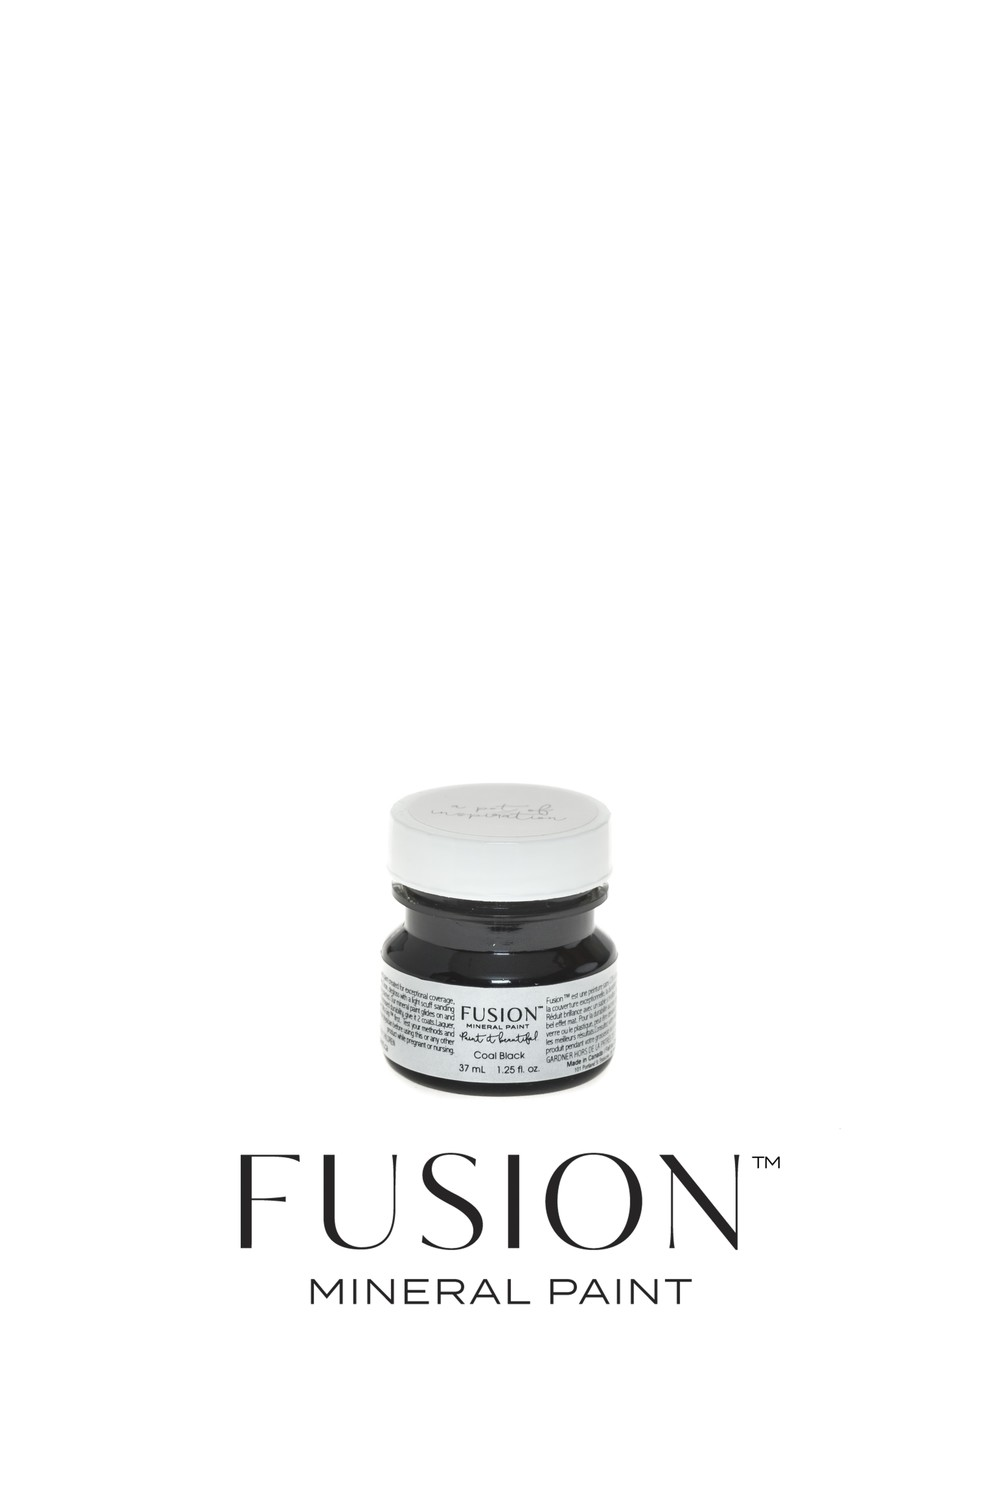 Coal Black Fusion Mineral Paint Tester